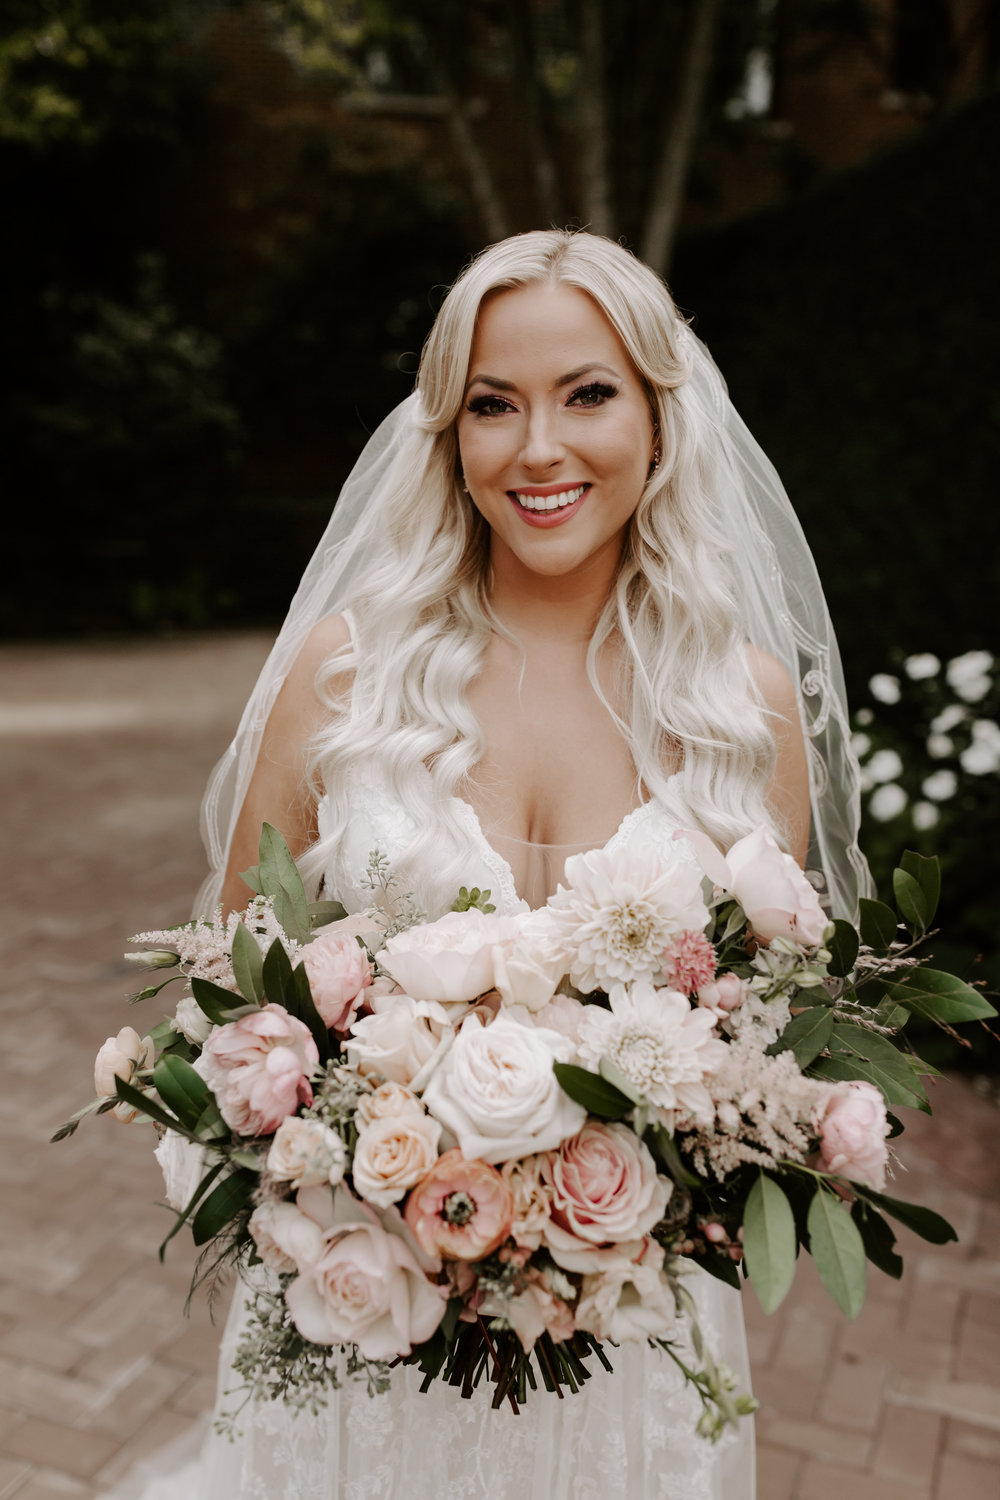 Rustic Bloom Photography | Bridal Bouquet Inspiration | Oregon Wedding Photographer